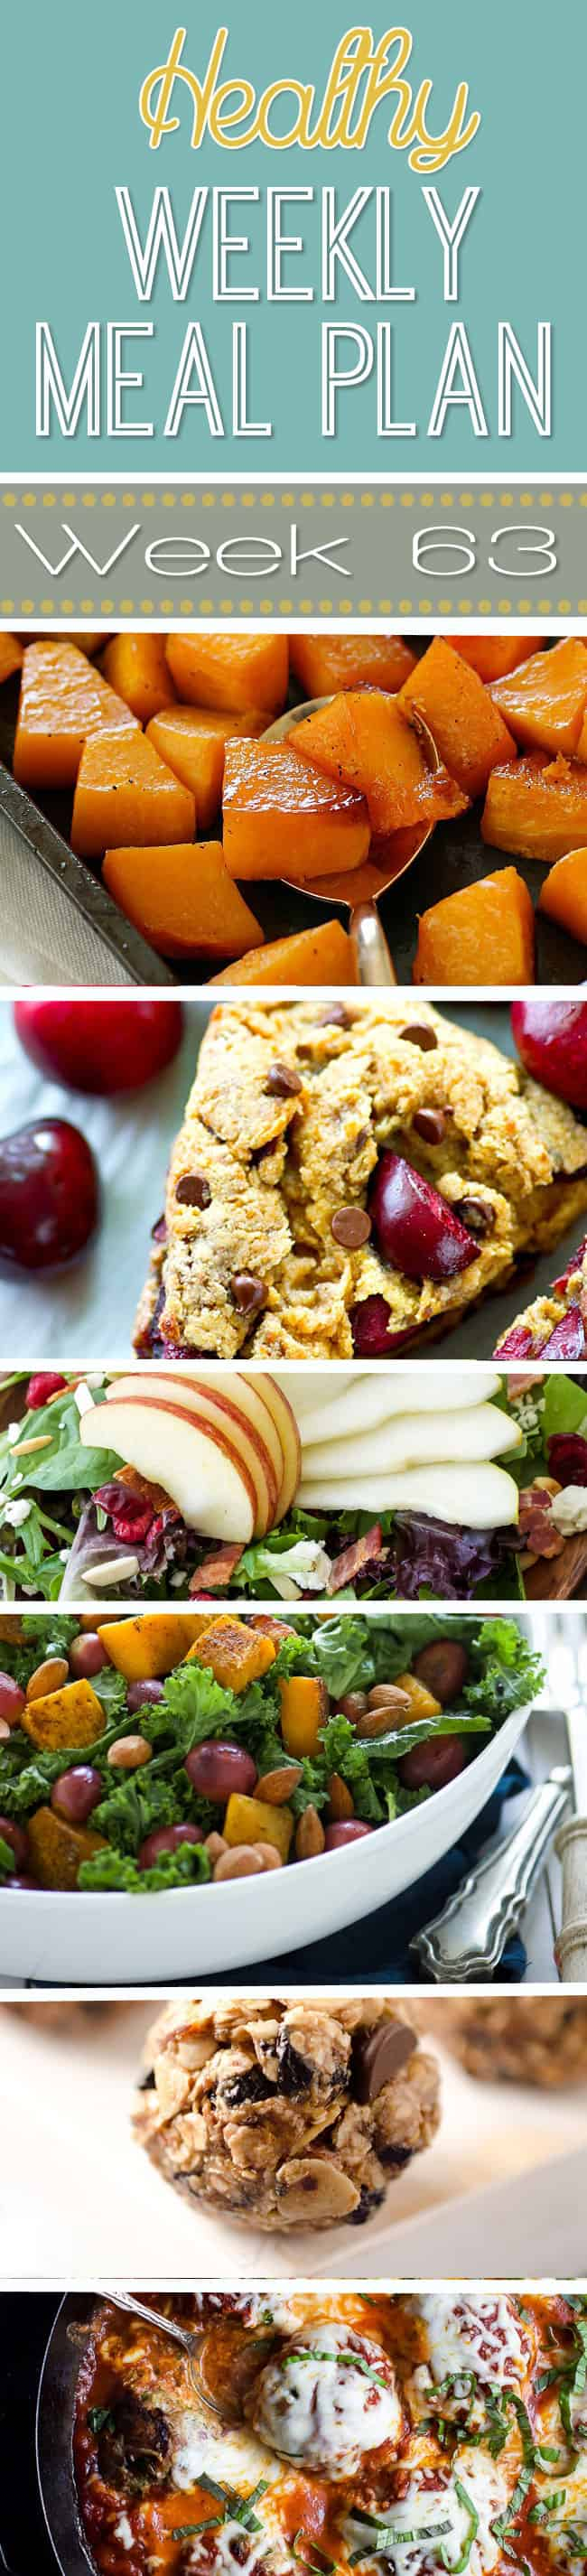 week-63-Make your life easier AND healthier! This healthy meal plan has a weeks worth of healthy recipes you can make for your family for breakfast, lunch, and dinner with a few snacks and desserts snuck in!   joyfulhealthyeats.com #family #dinnerideas #kidfriendly